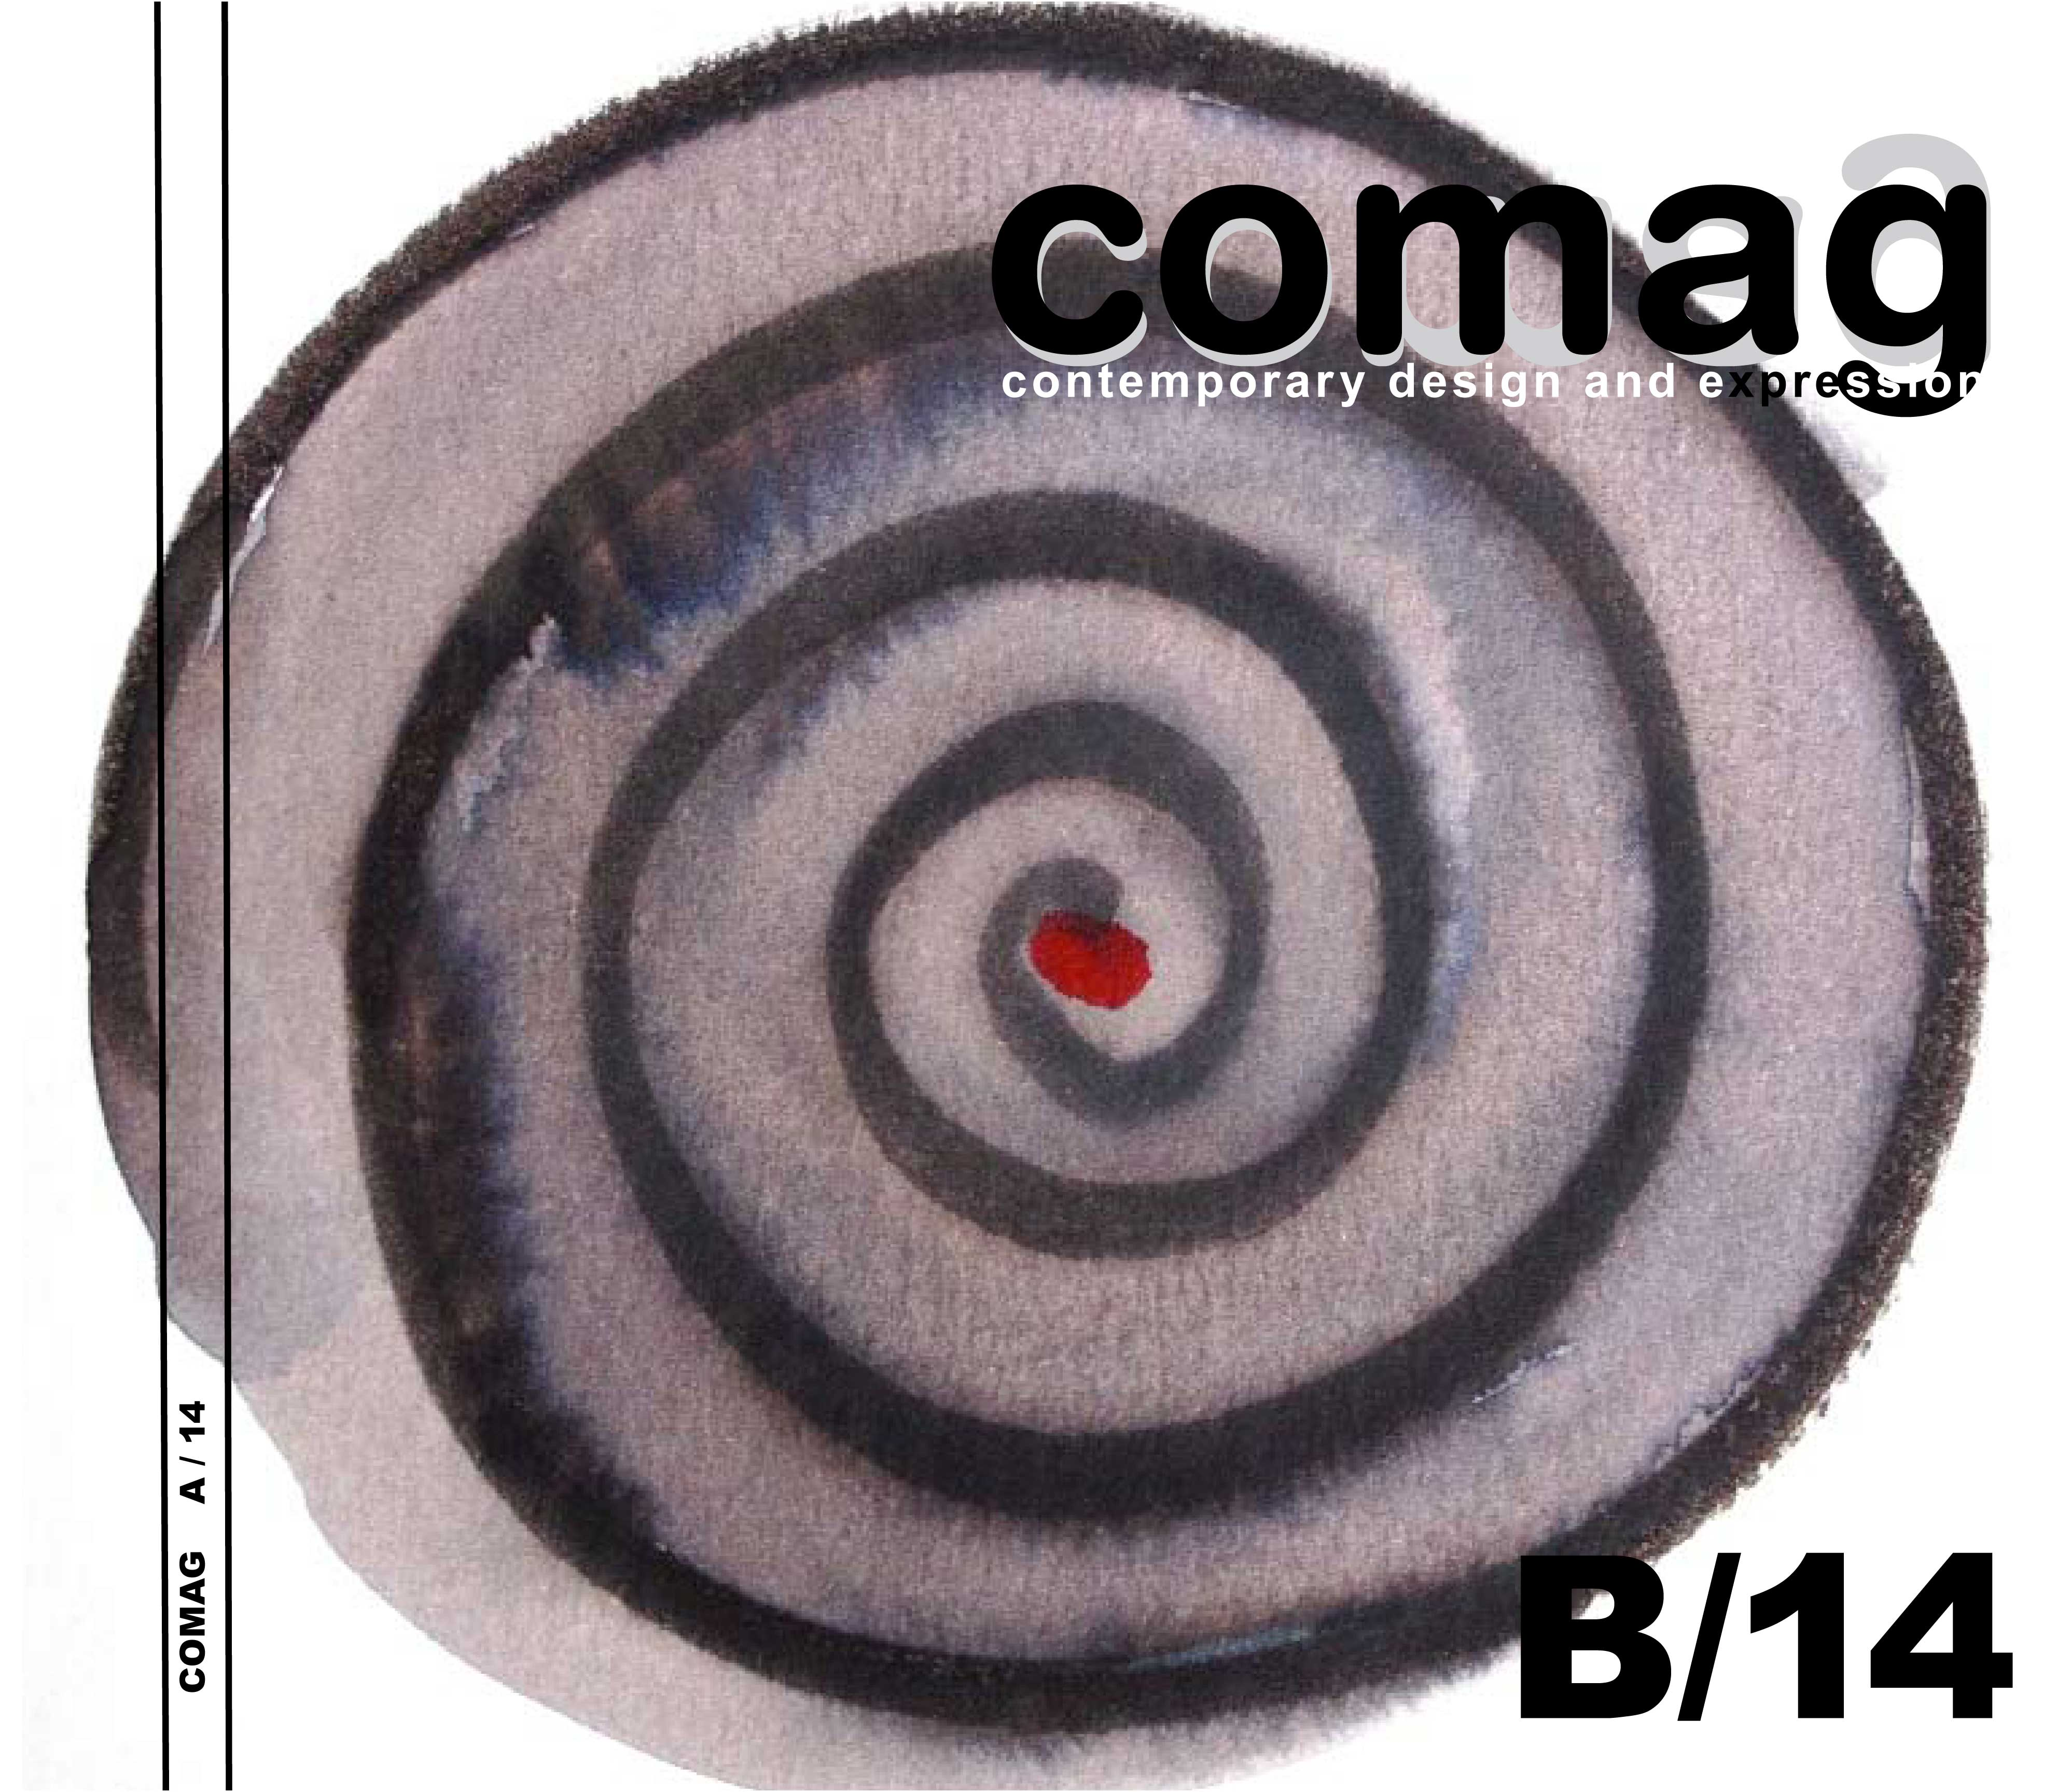 comagB-14-cover